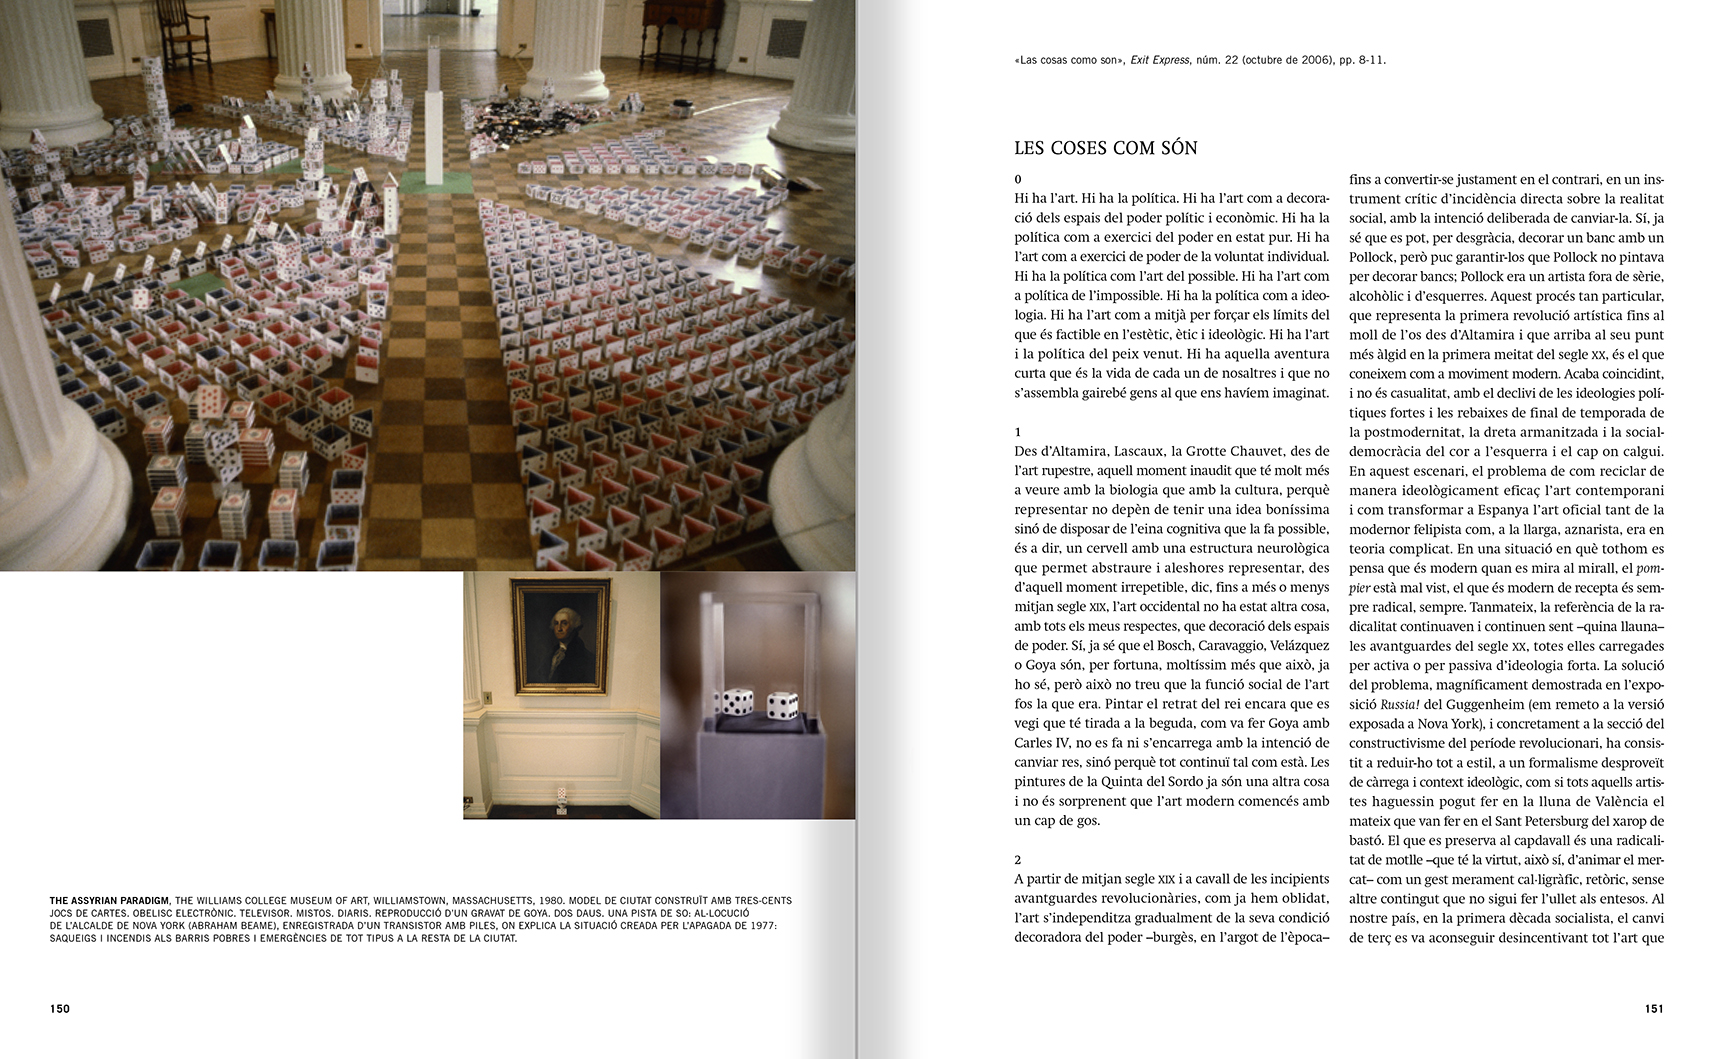 Selection from the catalogue 'Francesc Torres. Da capo', pages 150 and 151